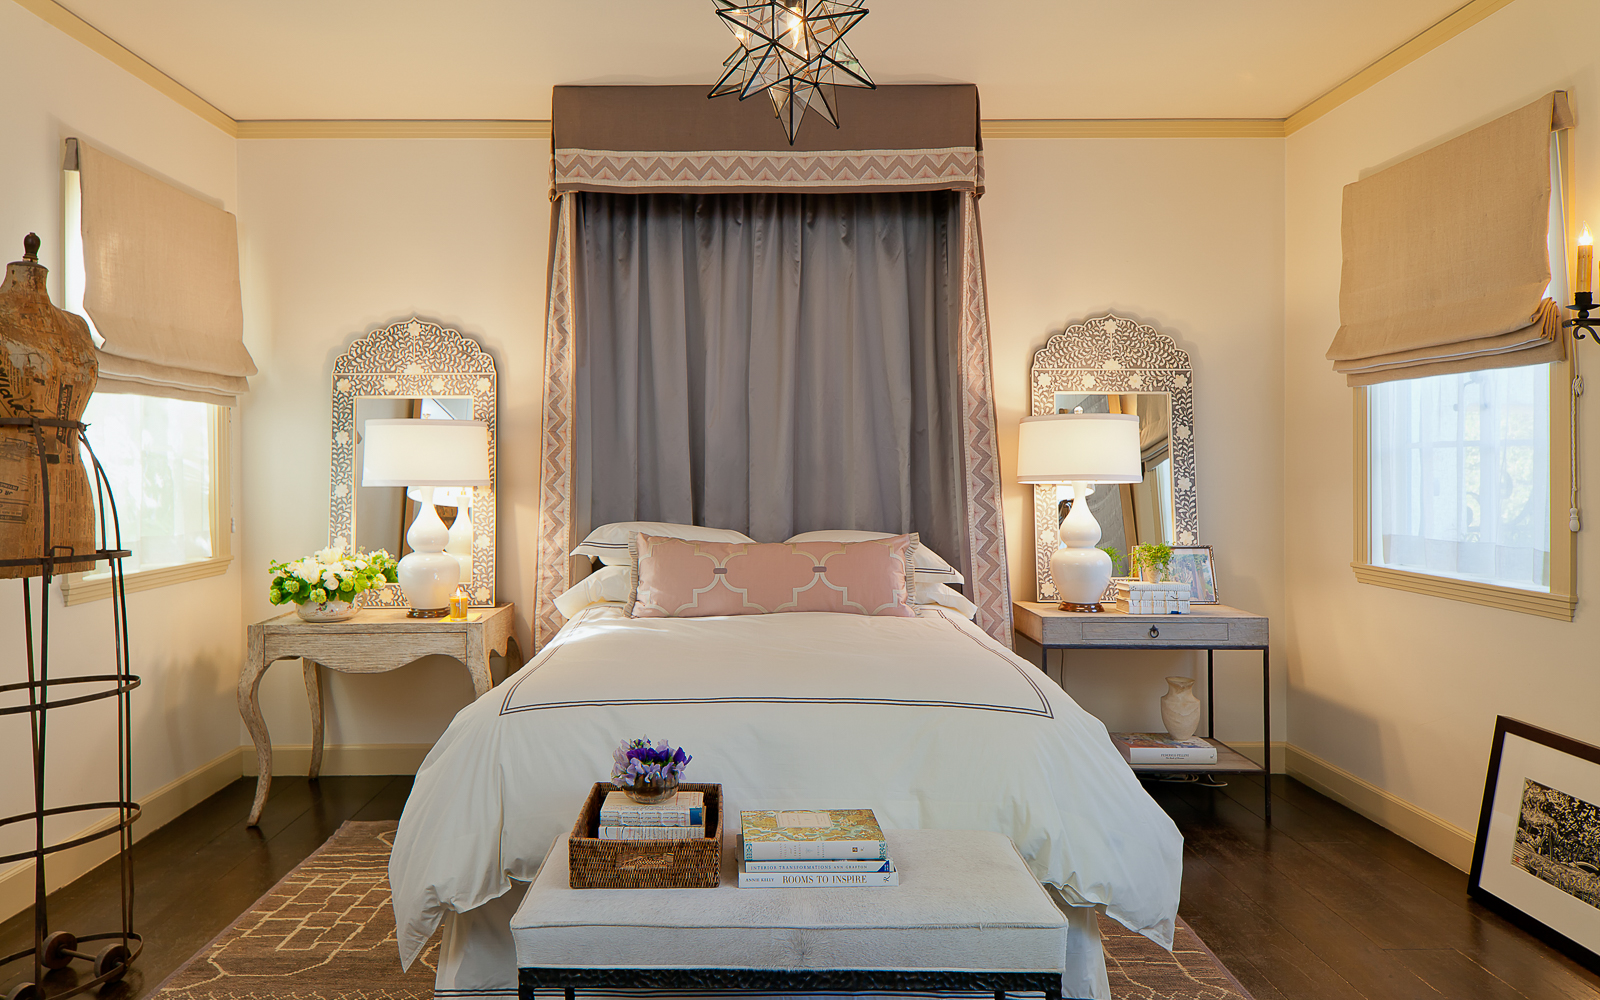 Sausalito, chic interior design of bedroom by award winning designer.